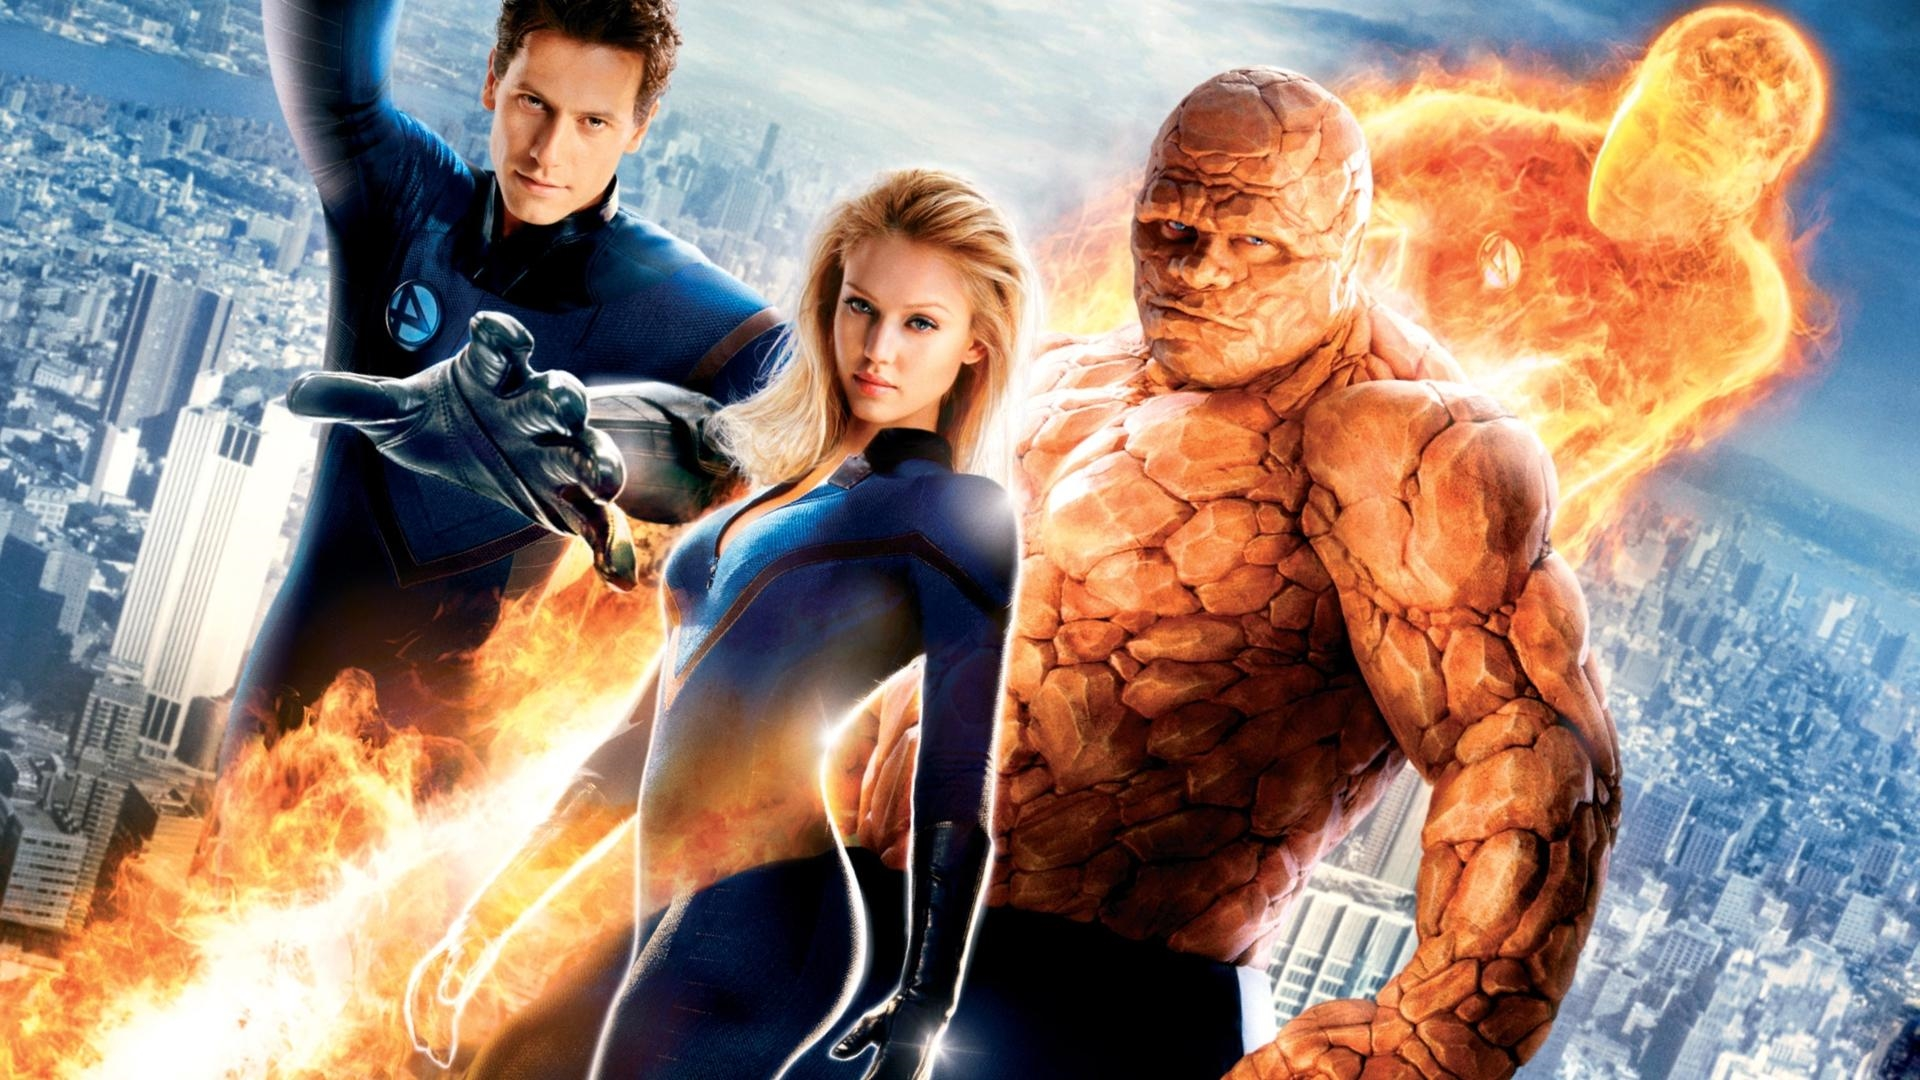 superheroes fantastic 4 team marvel thing free hd wallpaper